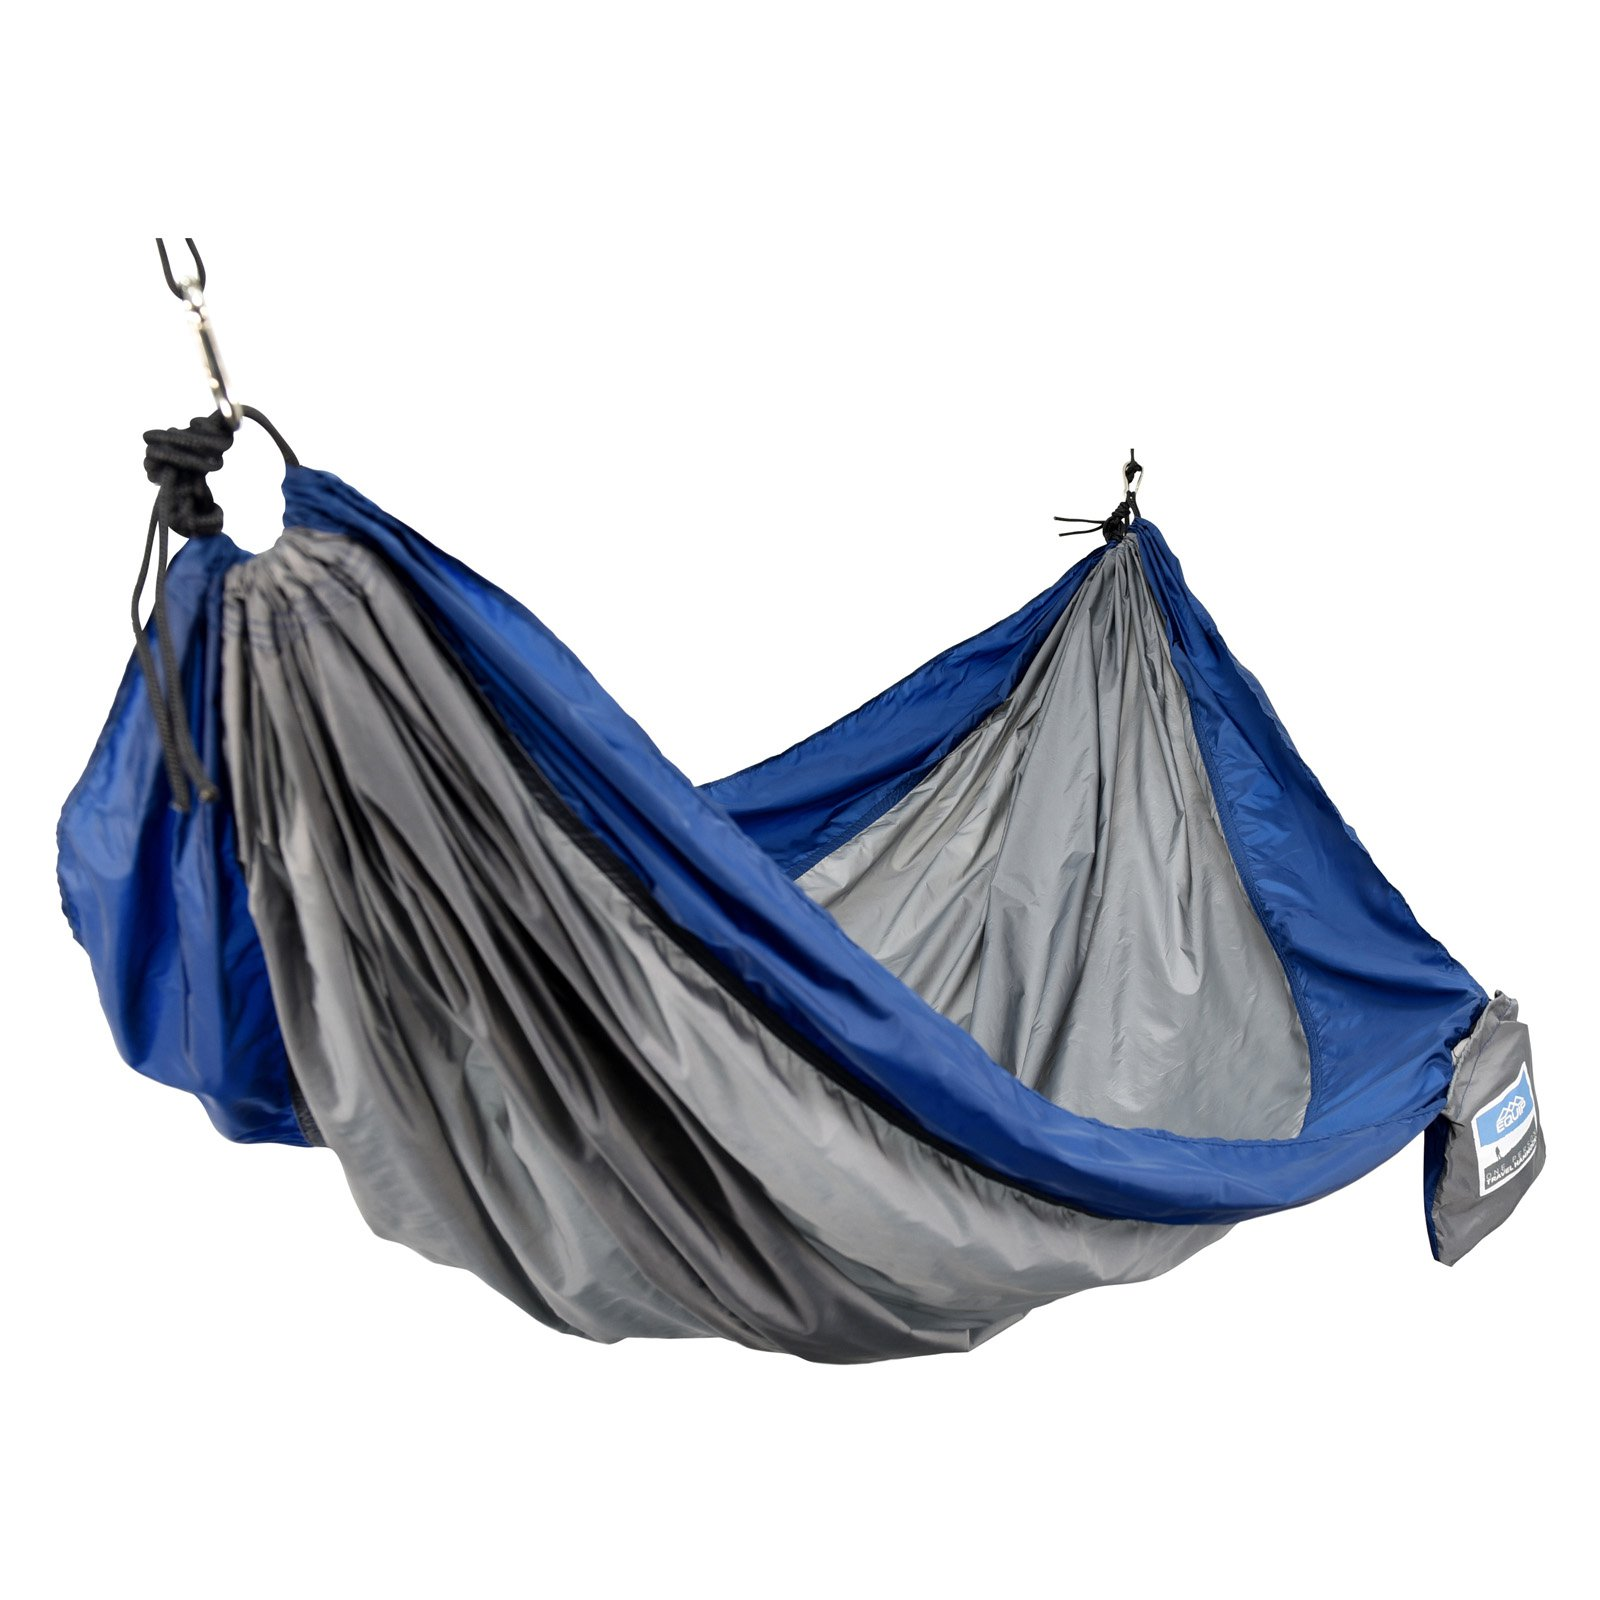 Superior Equip 1 Person Durable Nylon Portable Hammock For Camping, Hiking,  Backpacking, Travel, Includes Hanging Kit   Walmart.com